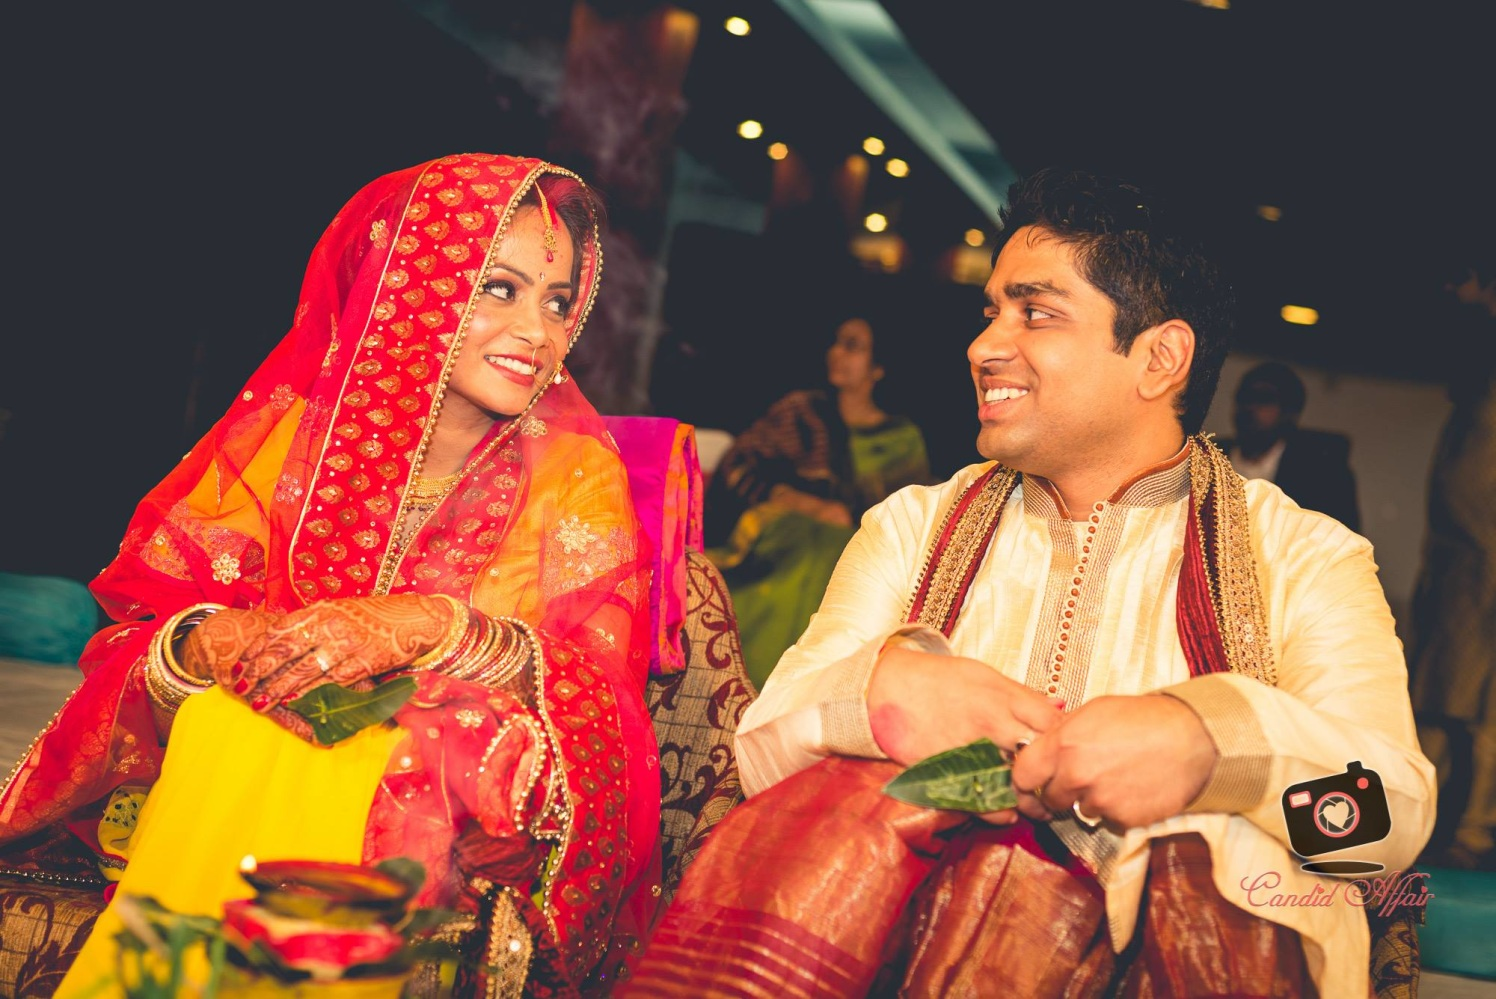 Bride And Groom's Candid Shot by Candid Affair Wedding-photography | Weddings Photos & Ideas